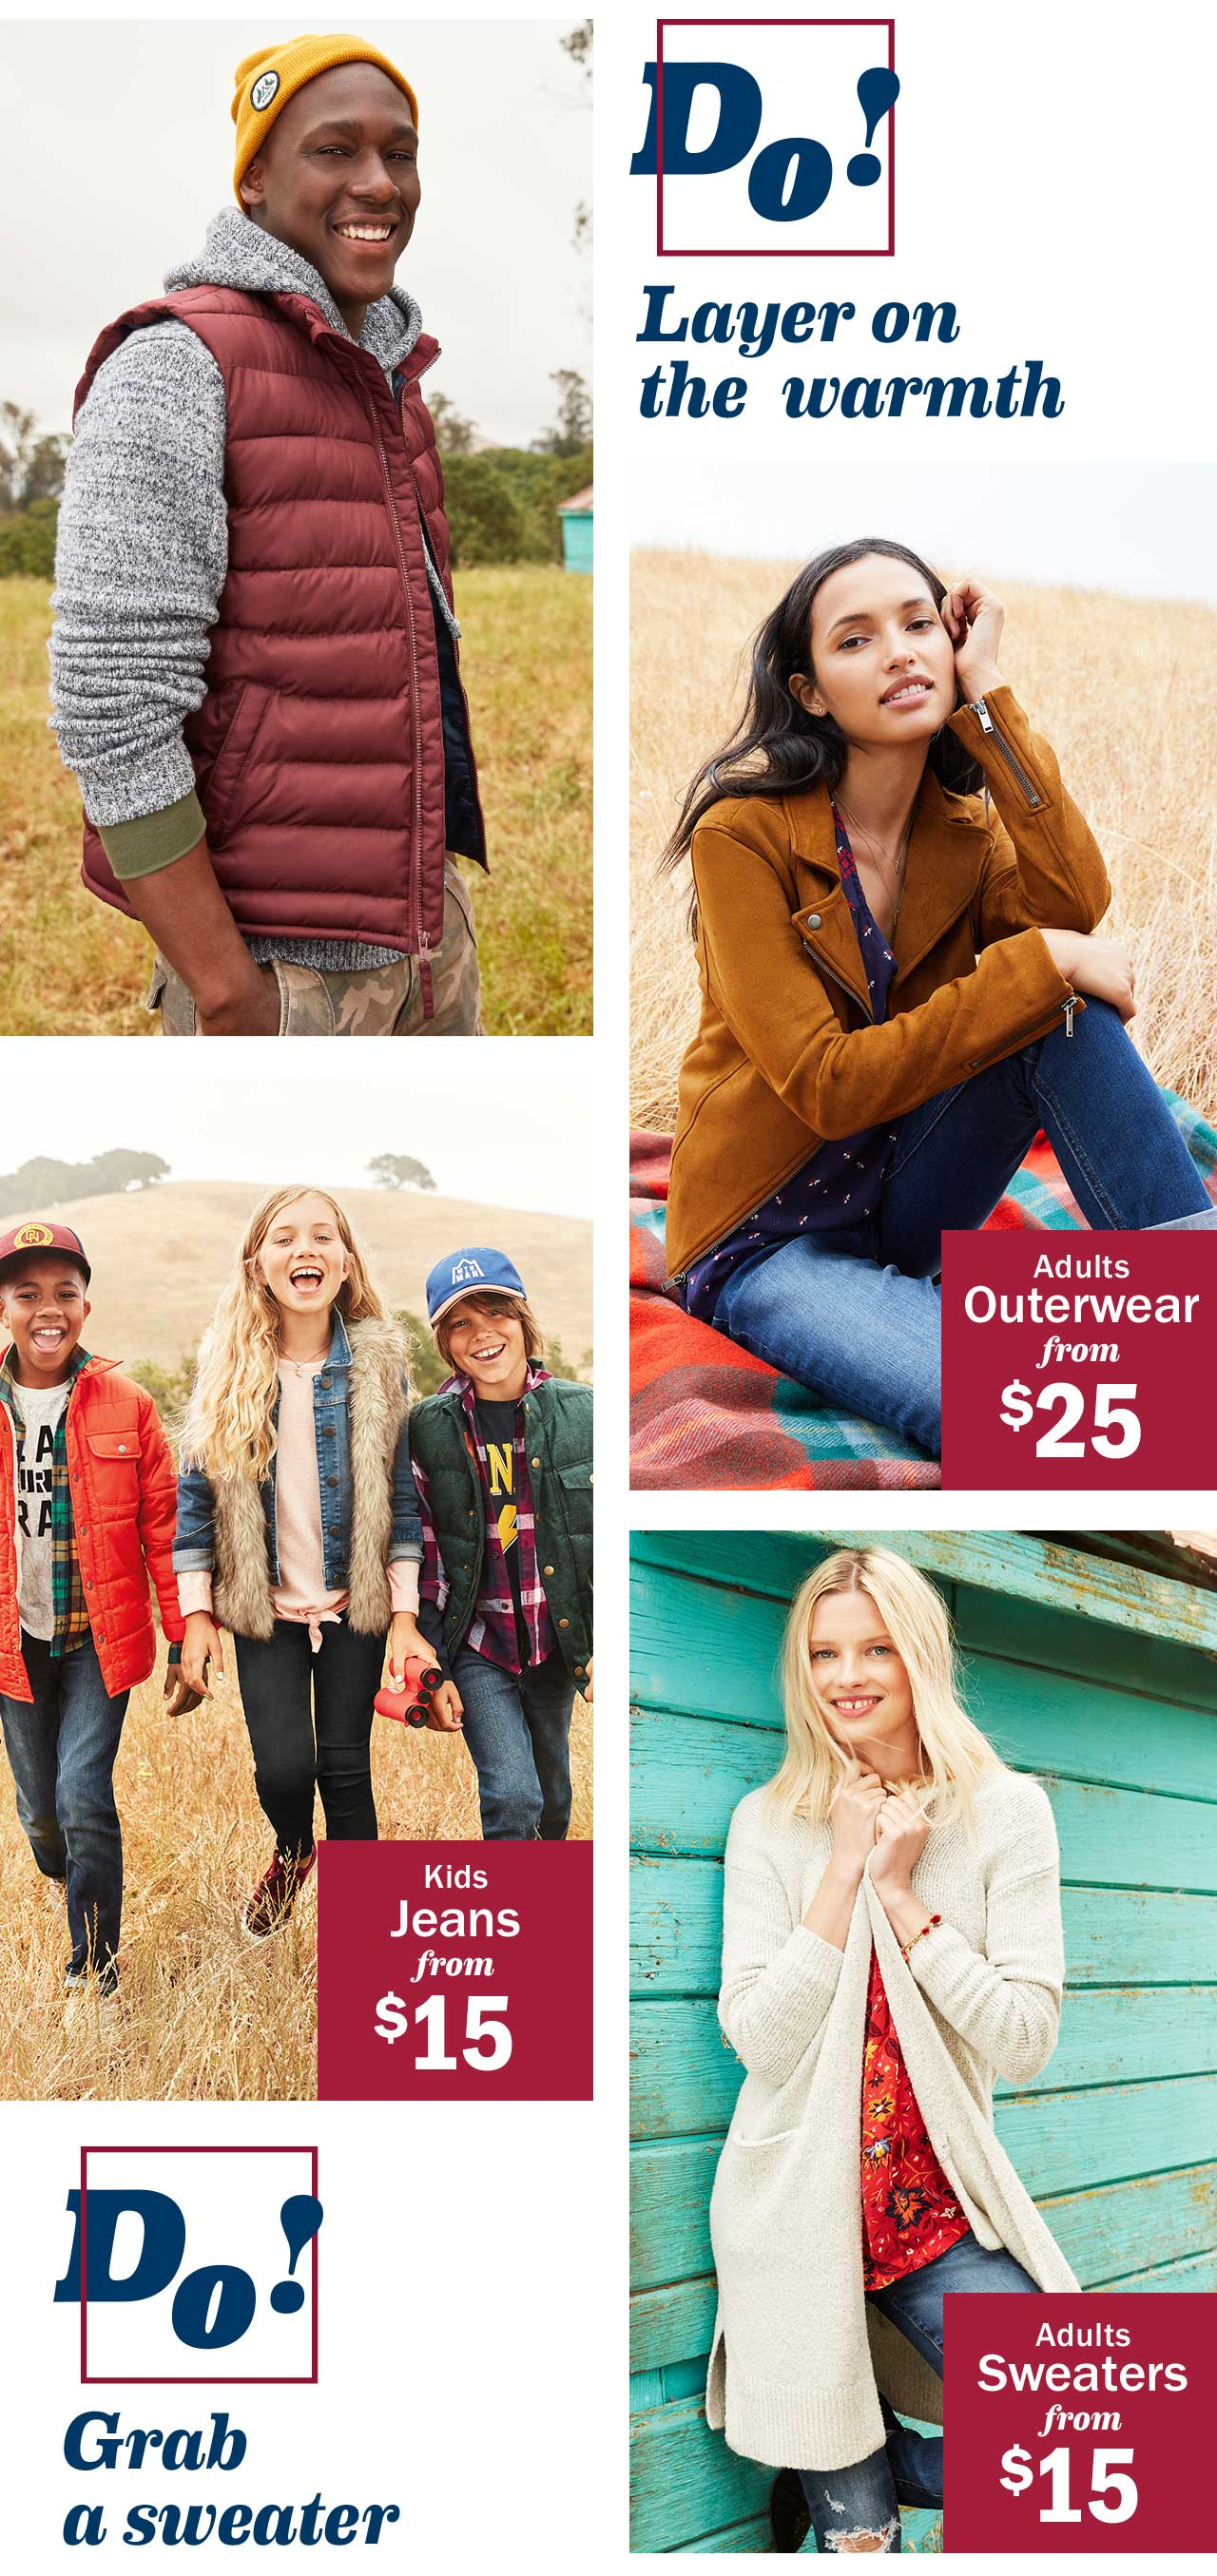 Do! Layer on the warmth | Adults Outerwear from $25 | Kids Jeans from $15 | Do! Grab a sweater | Adults Sweaters from $15